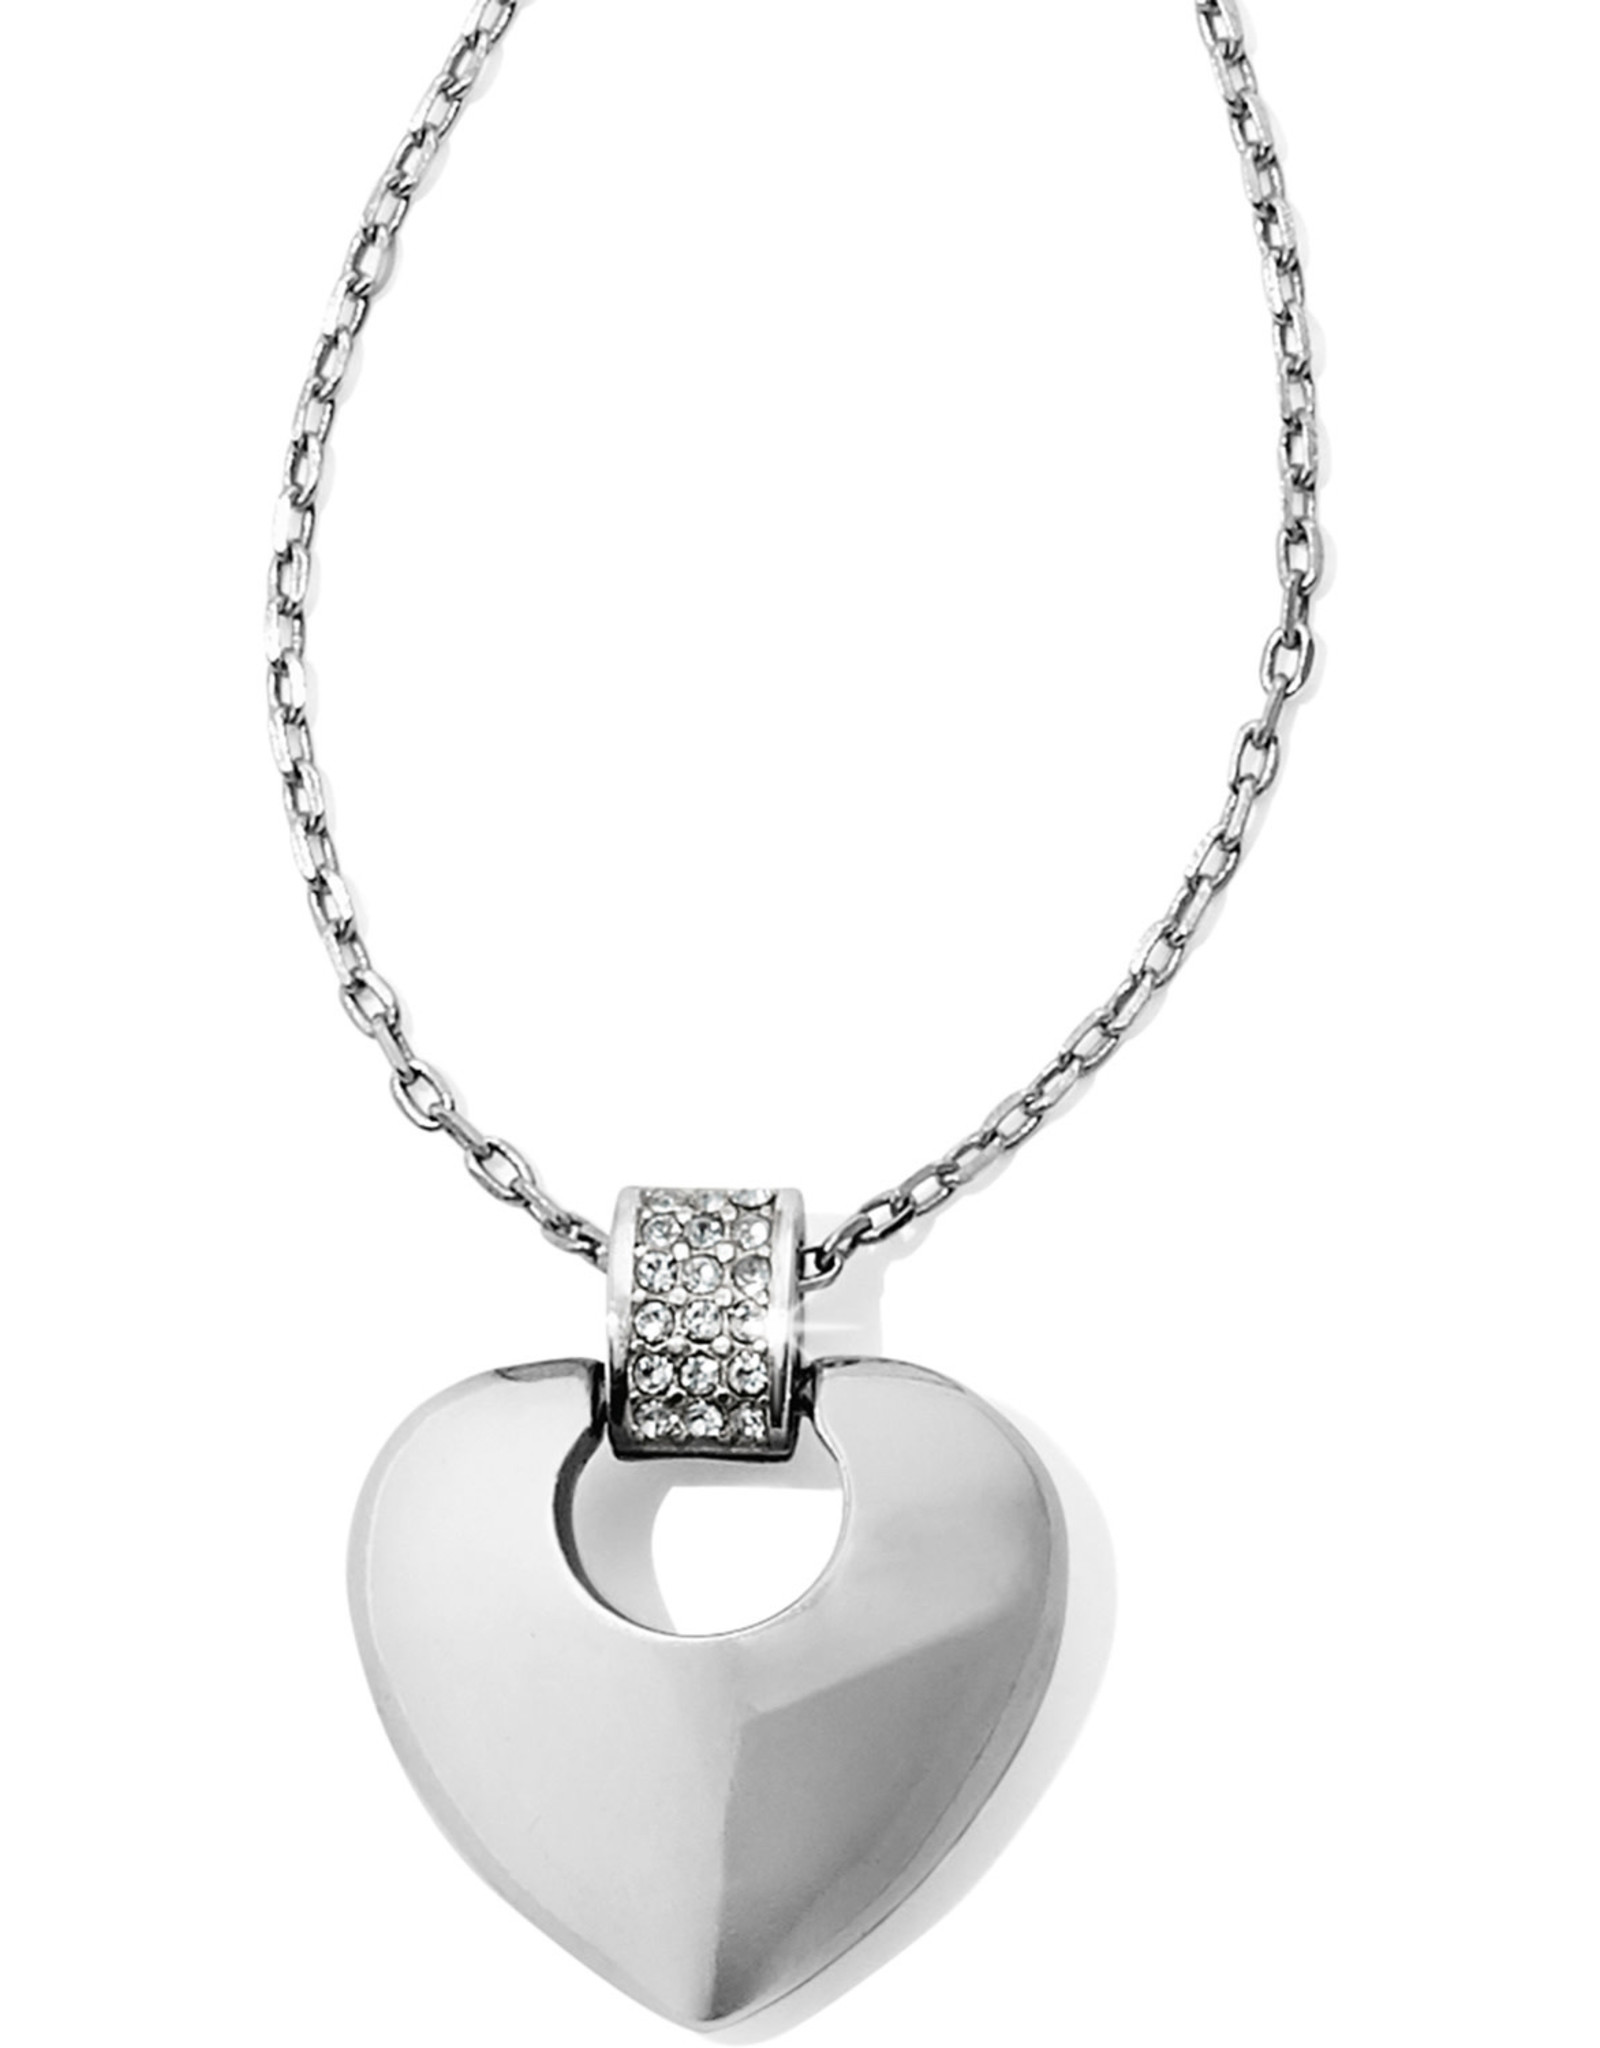 Brighton Brighton Meridian Equinox Heart Necklace